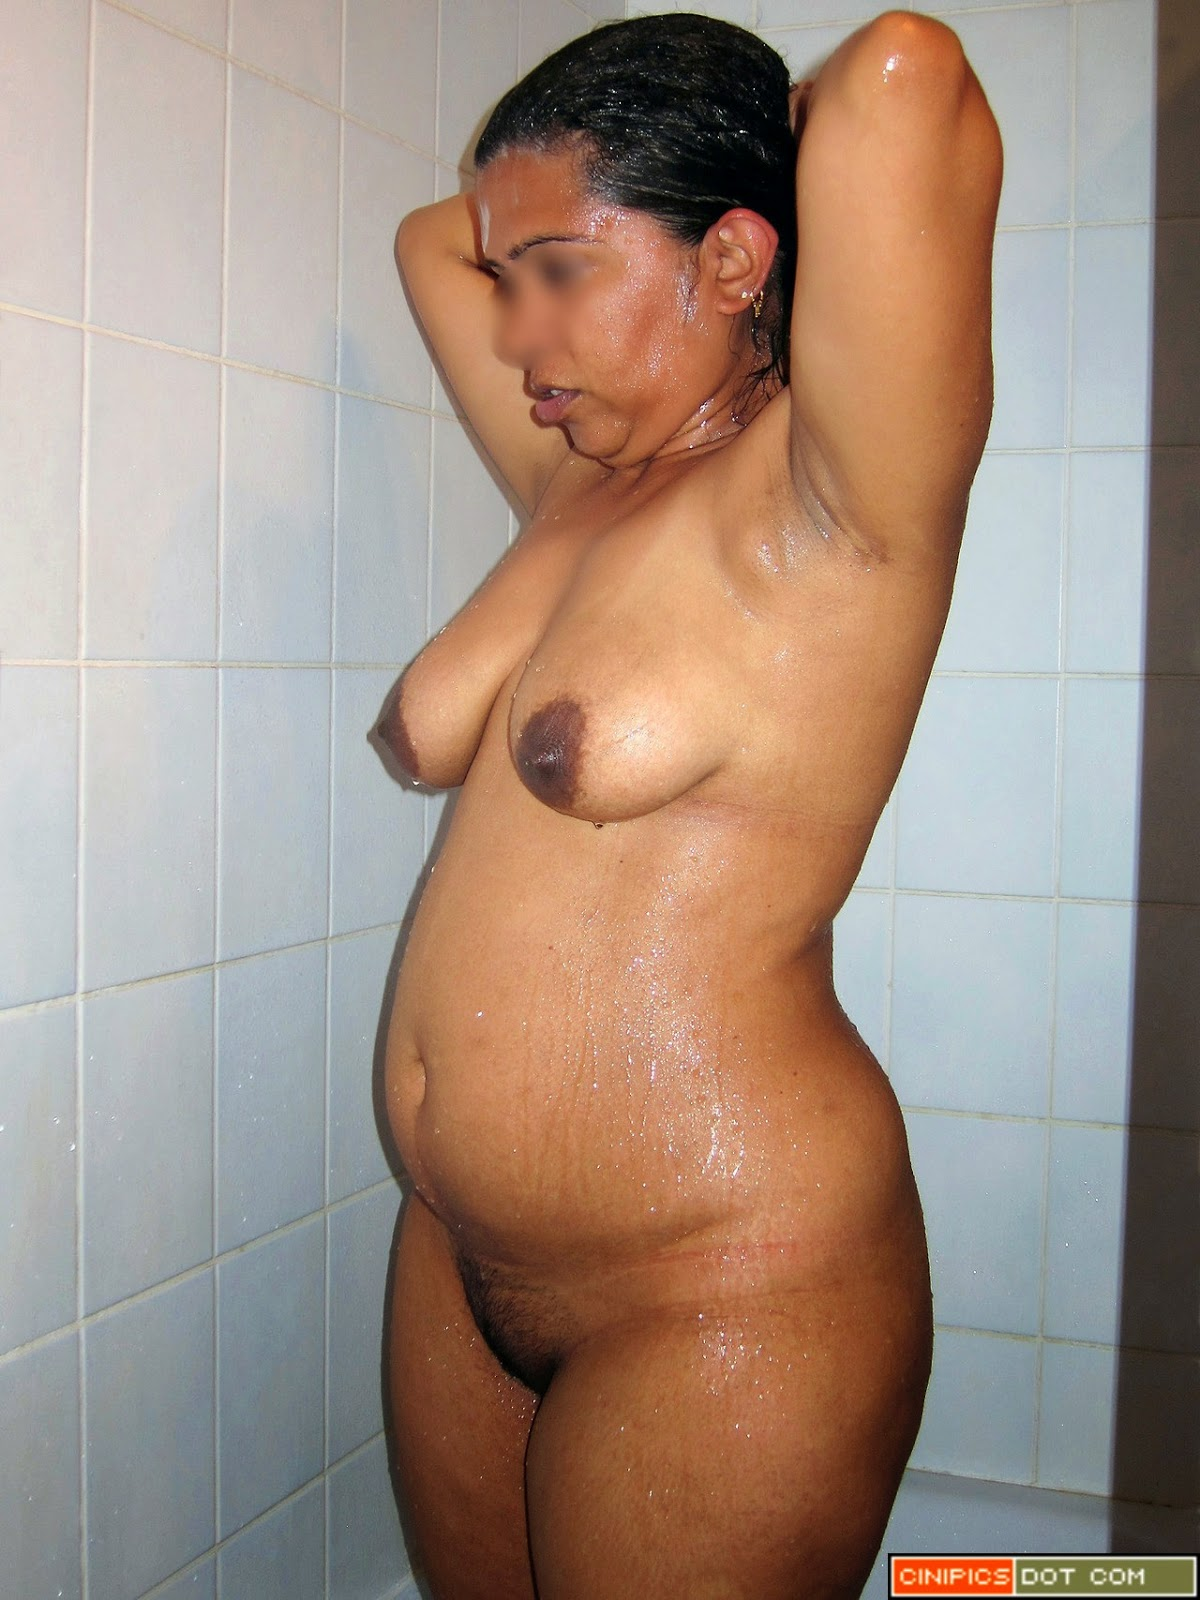 Fat nude indian collage girl